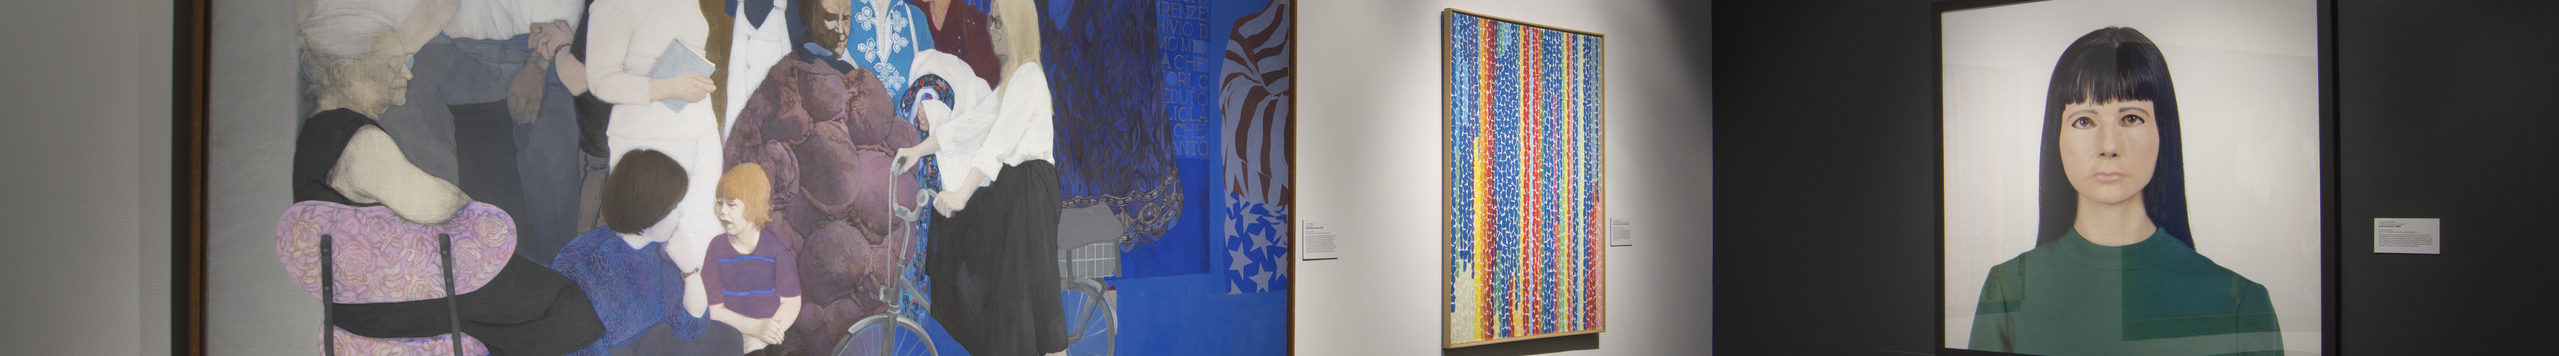 Gallery view of two large-scale, brightly colored works of art on a white wall and a wall-size portrait of a light-skinned woman on the adjacent, dark gray wall.